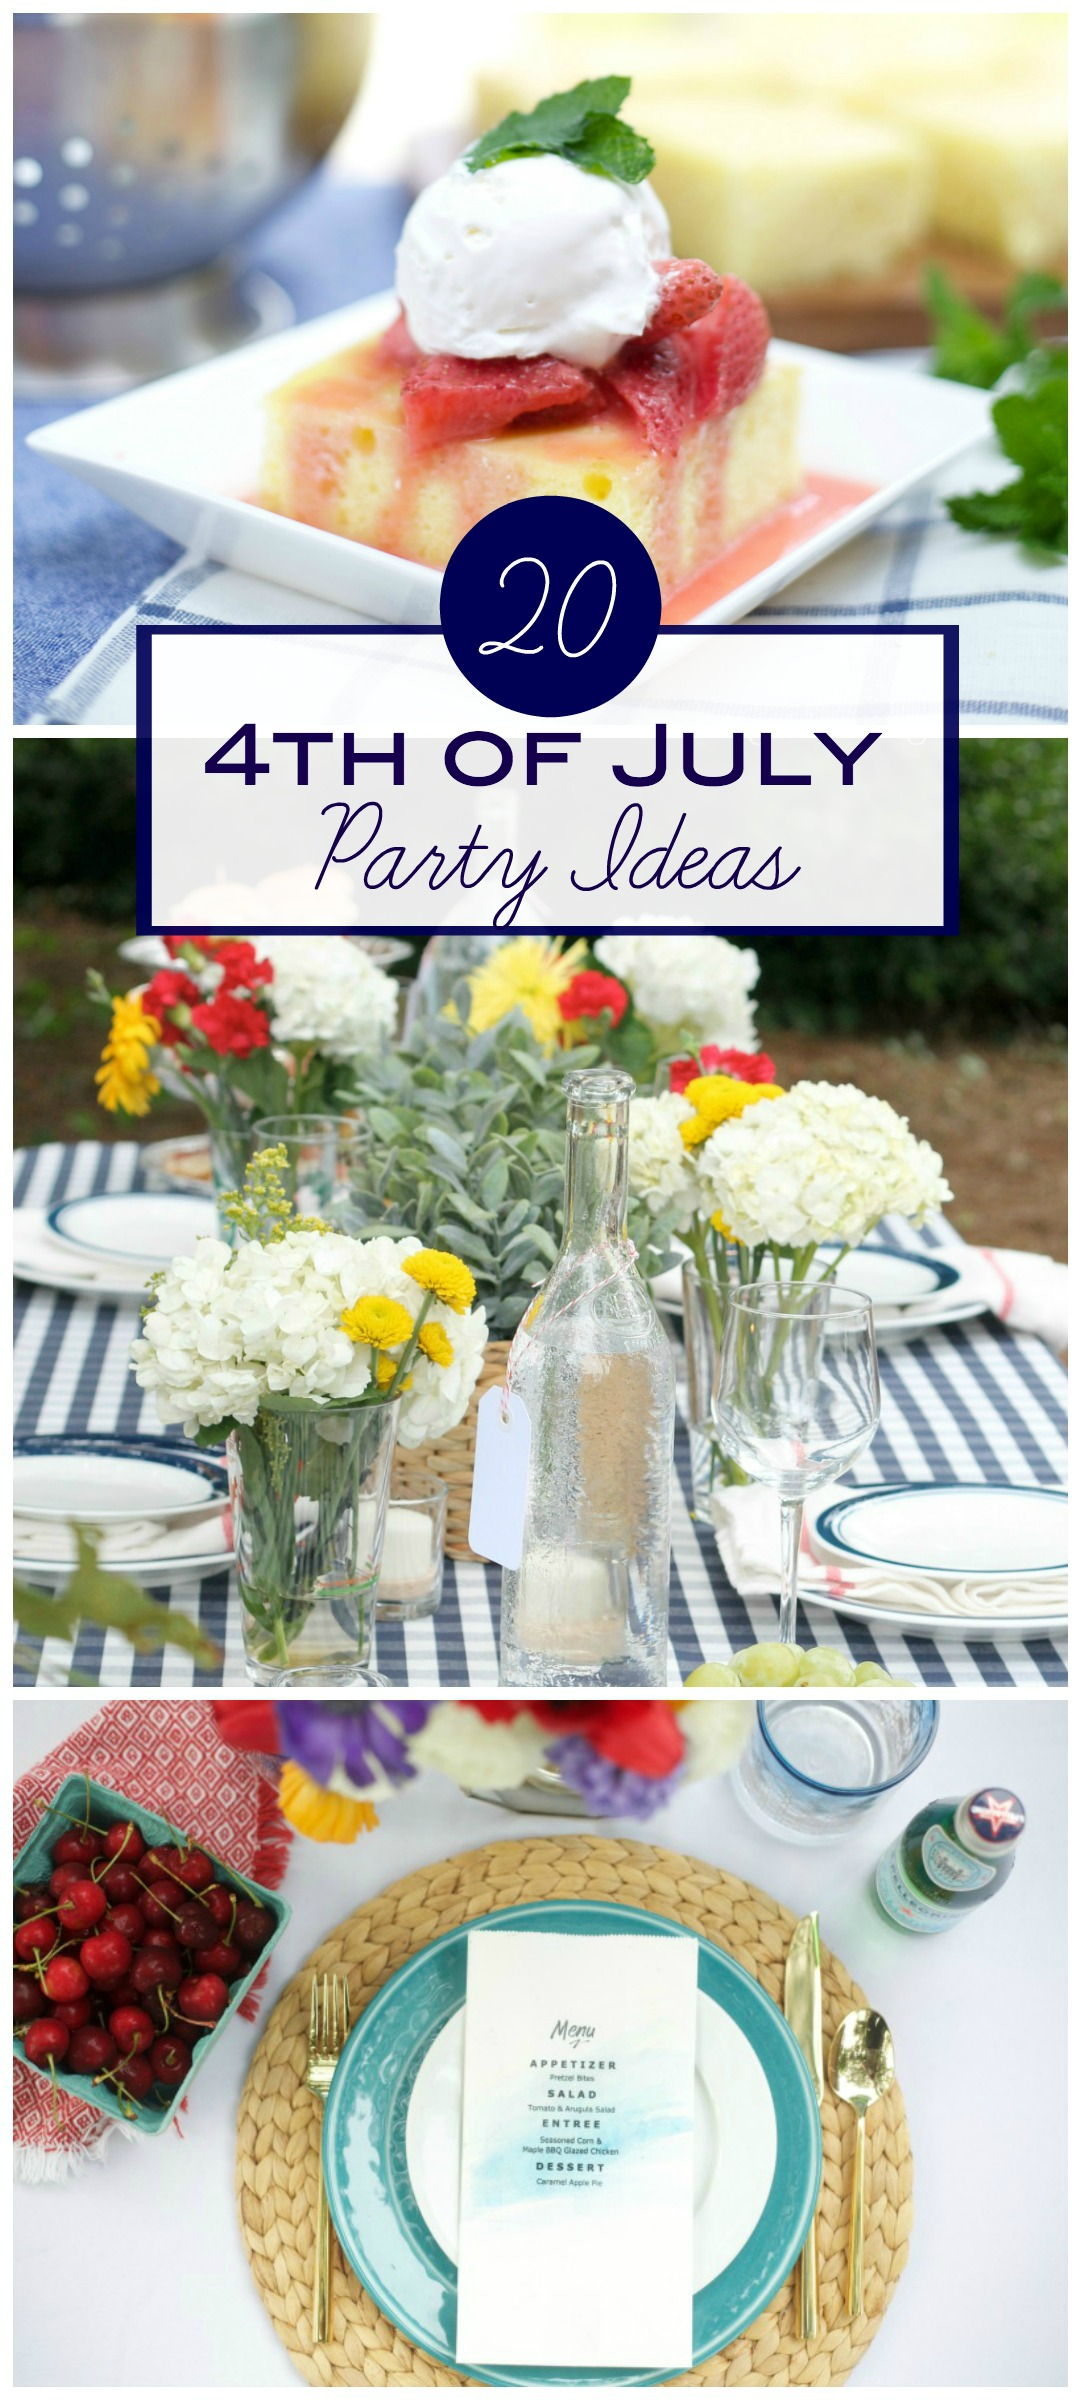 4th of July Party Ideas by PartiesforPennies.com